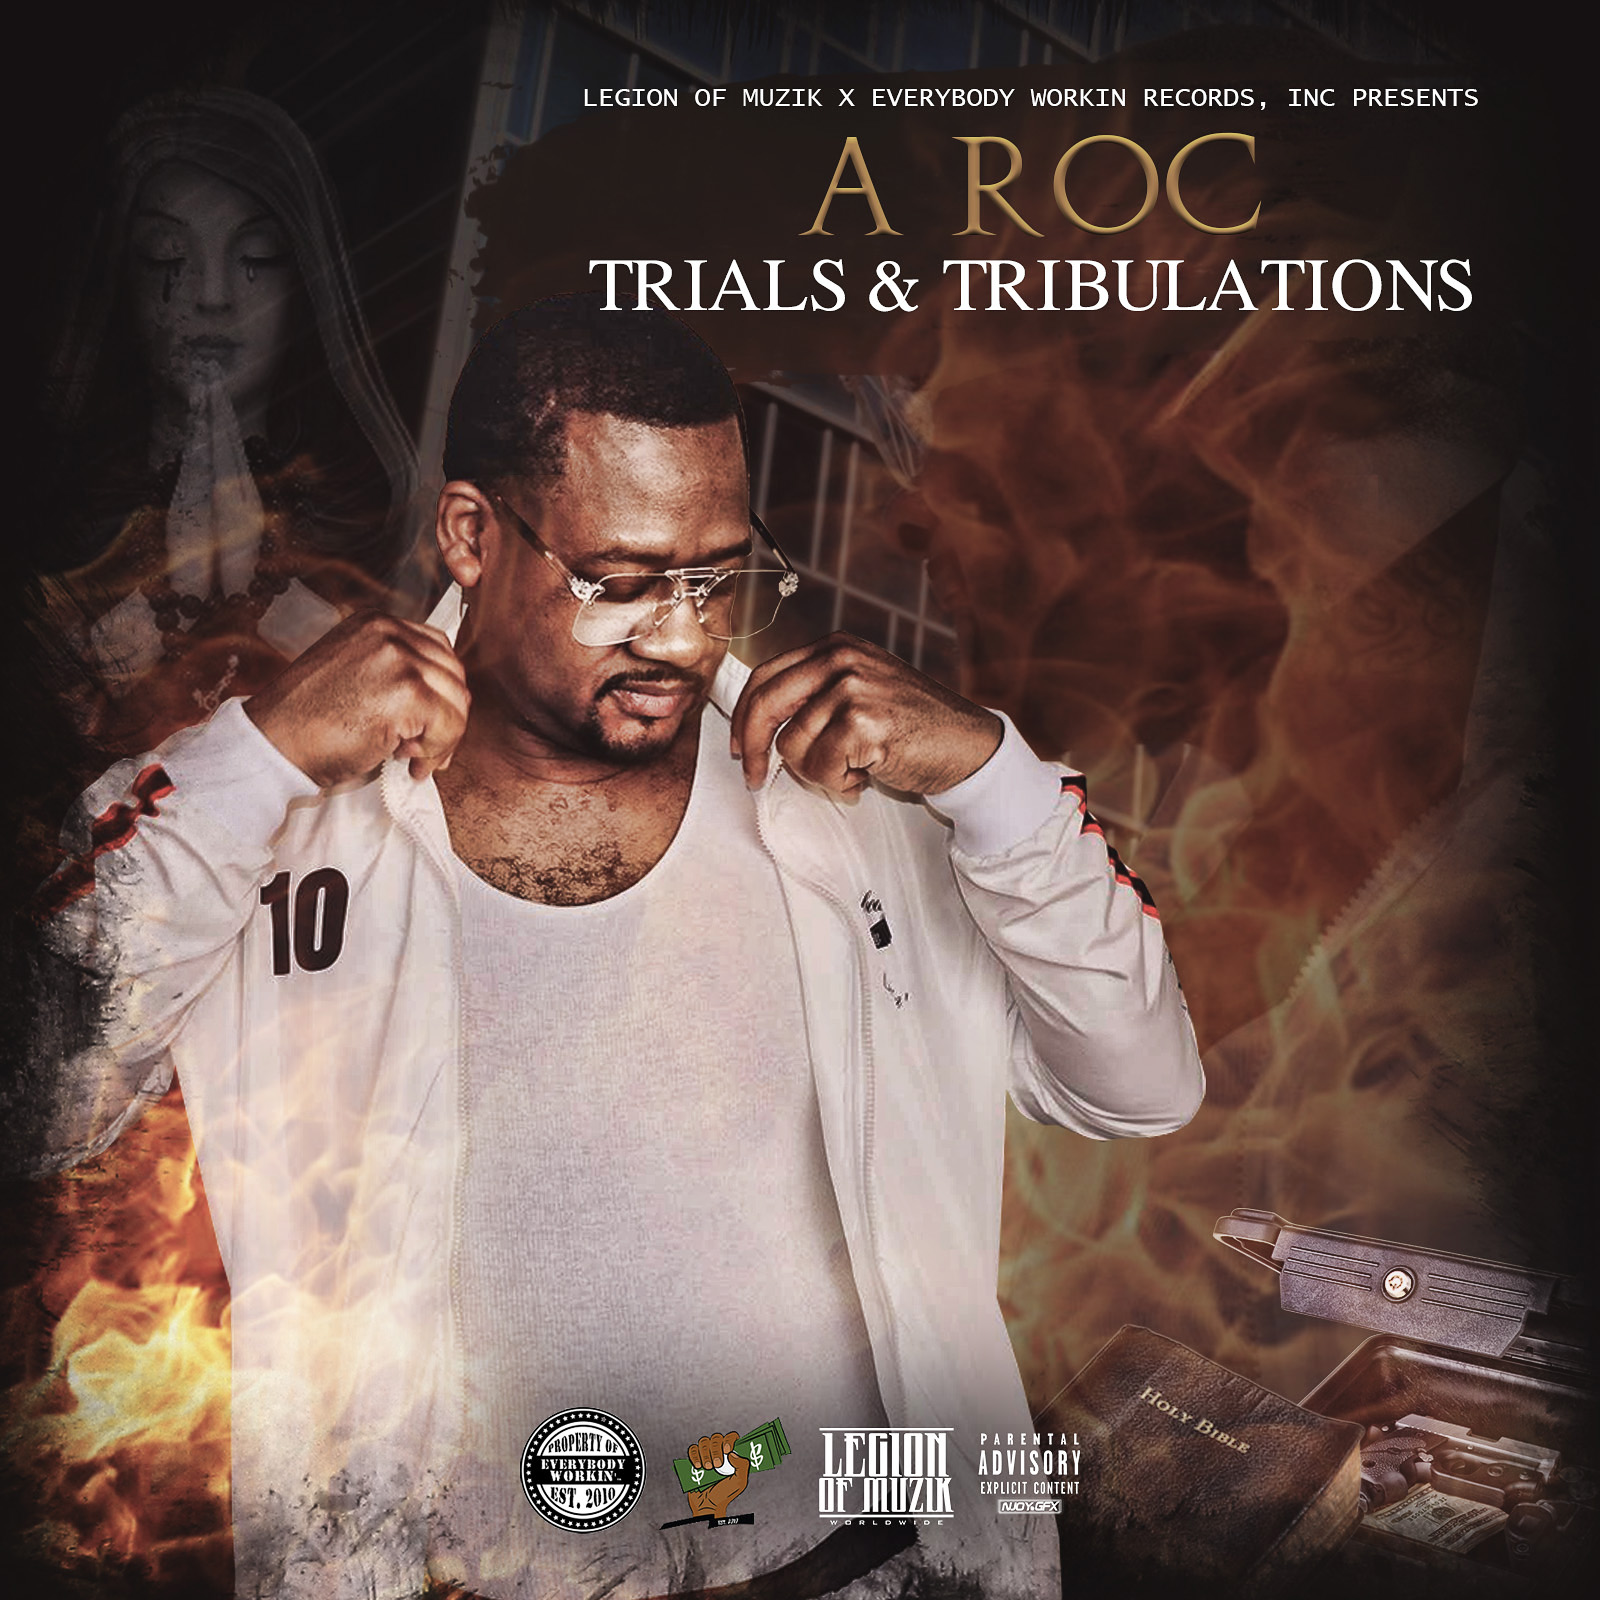 TRIALS AND TRIBULATIONS ALBUM